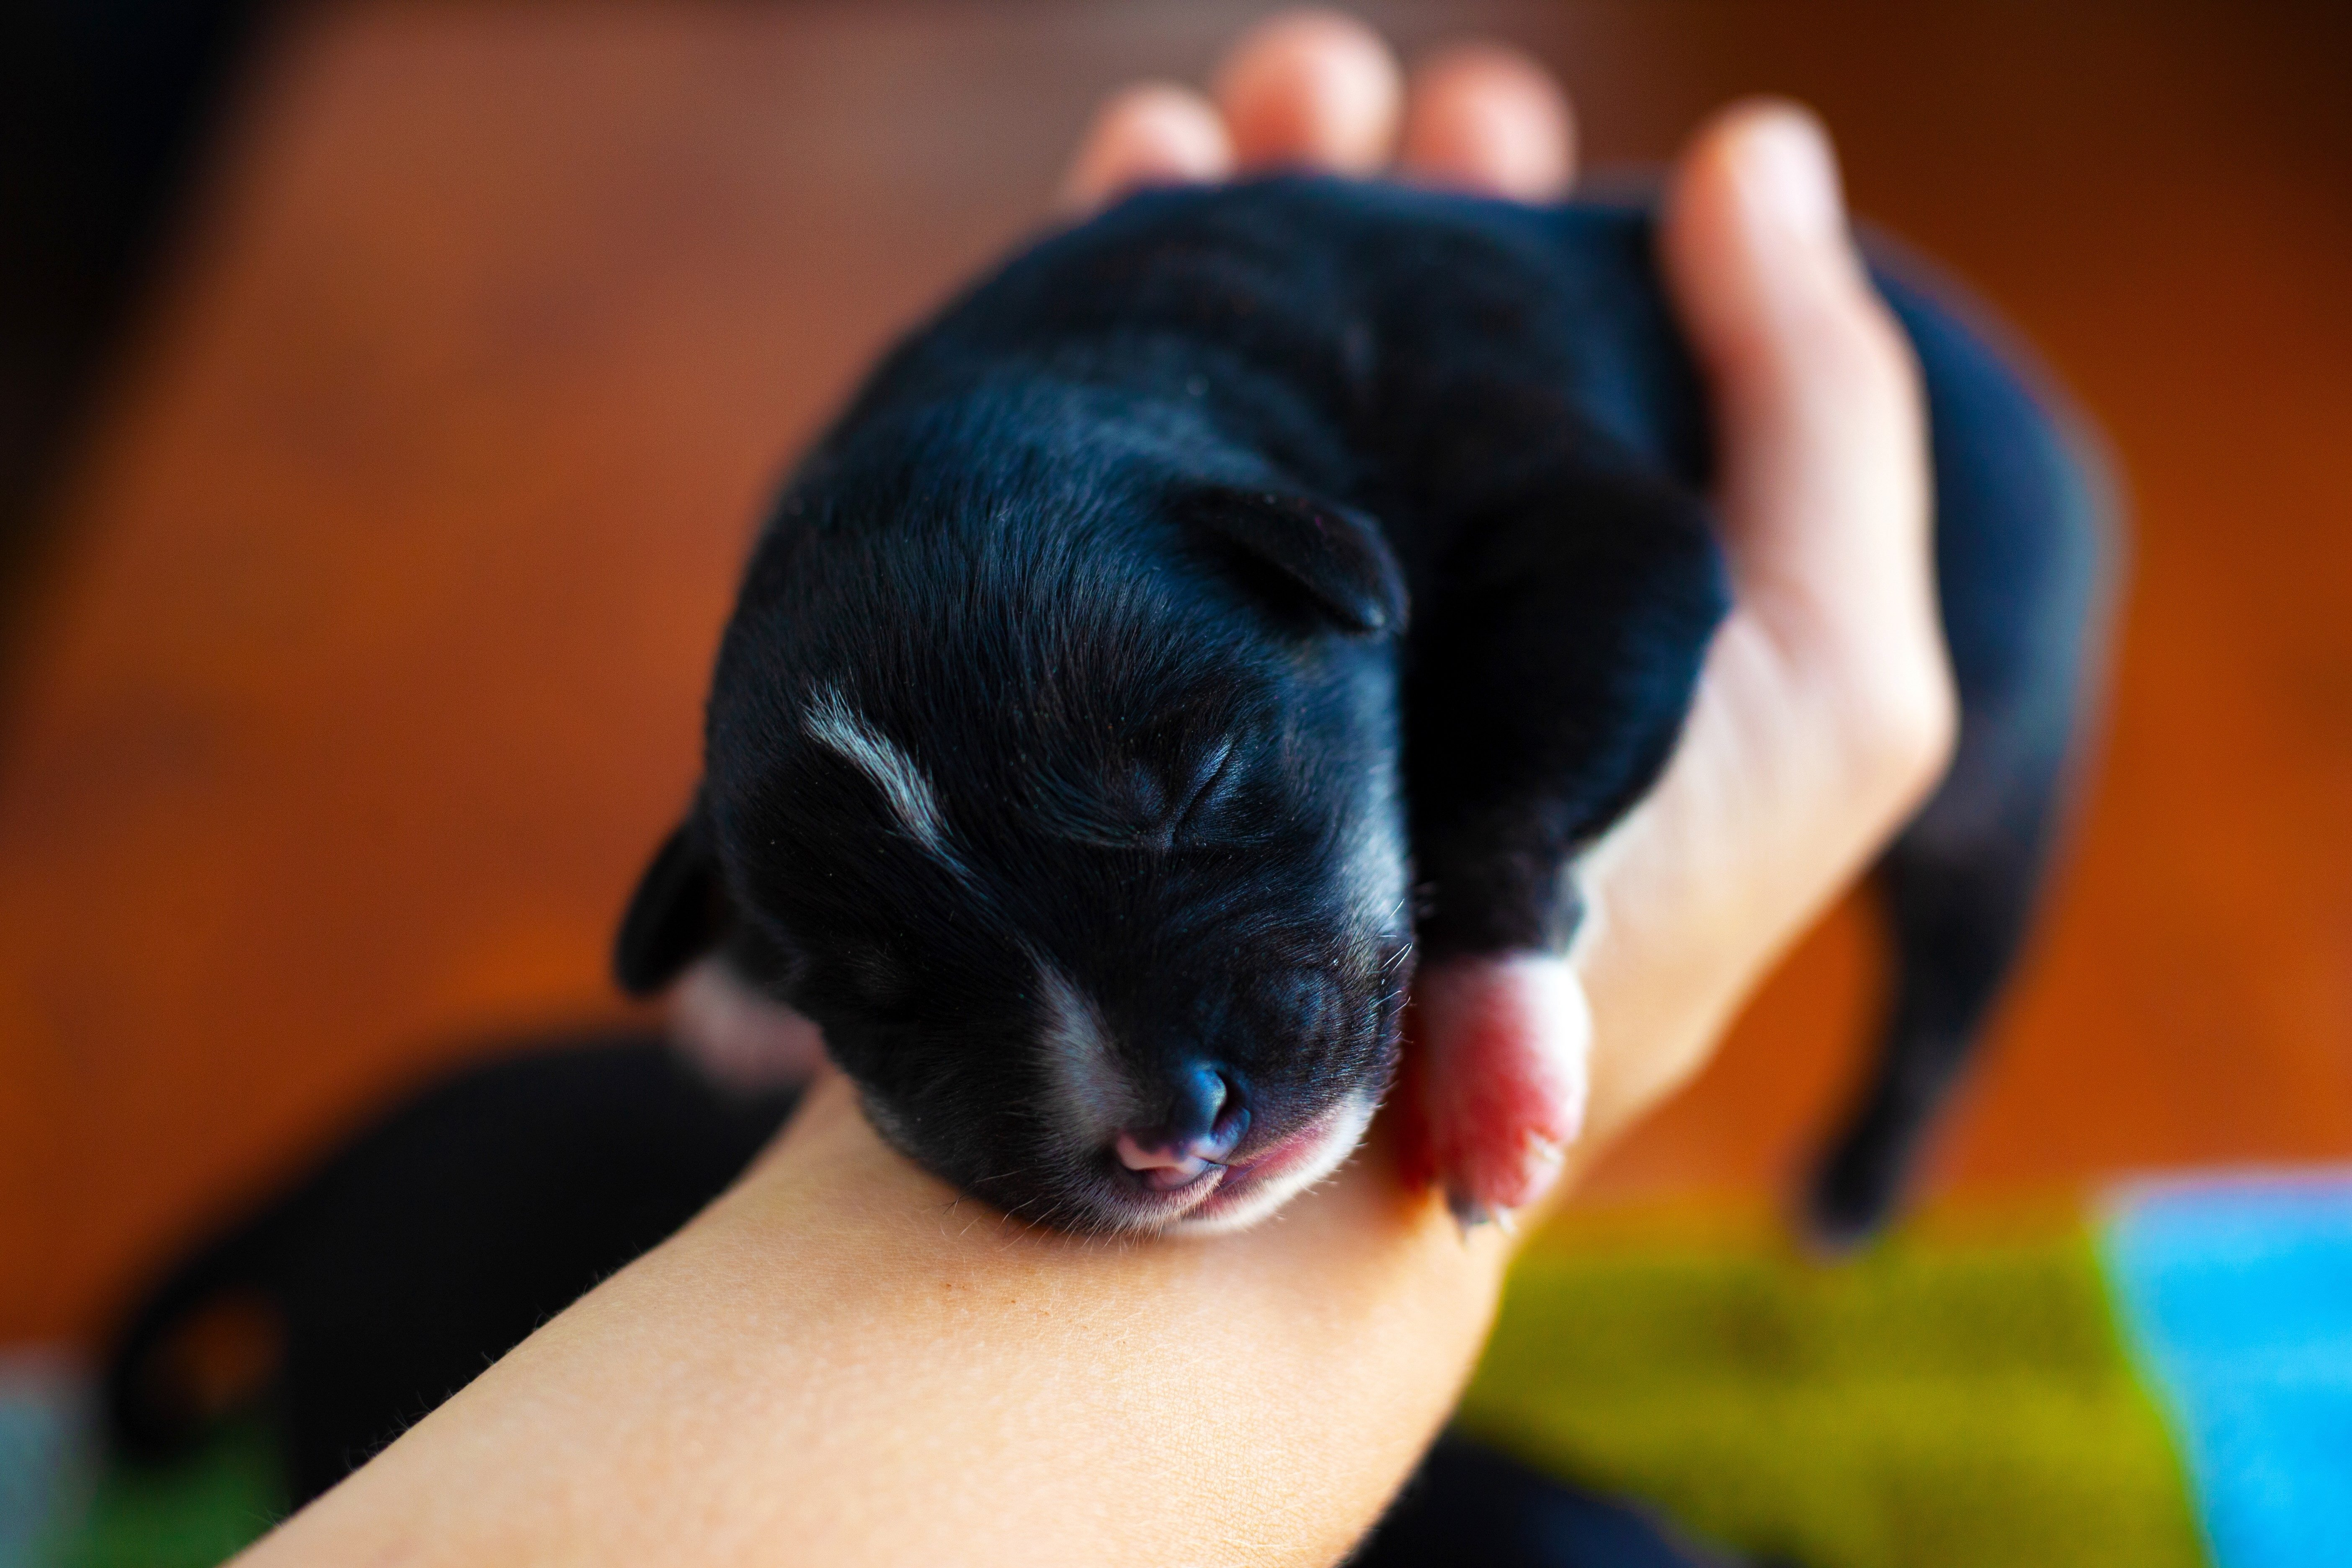 little black puppy sleeping in his arms